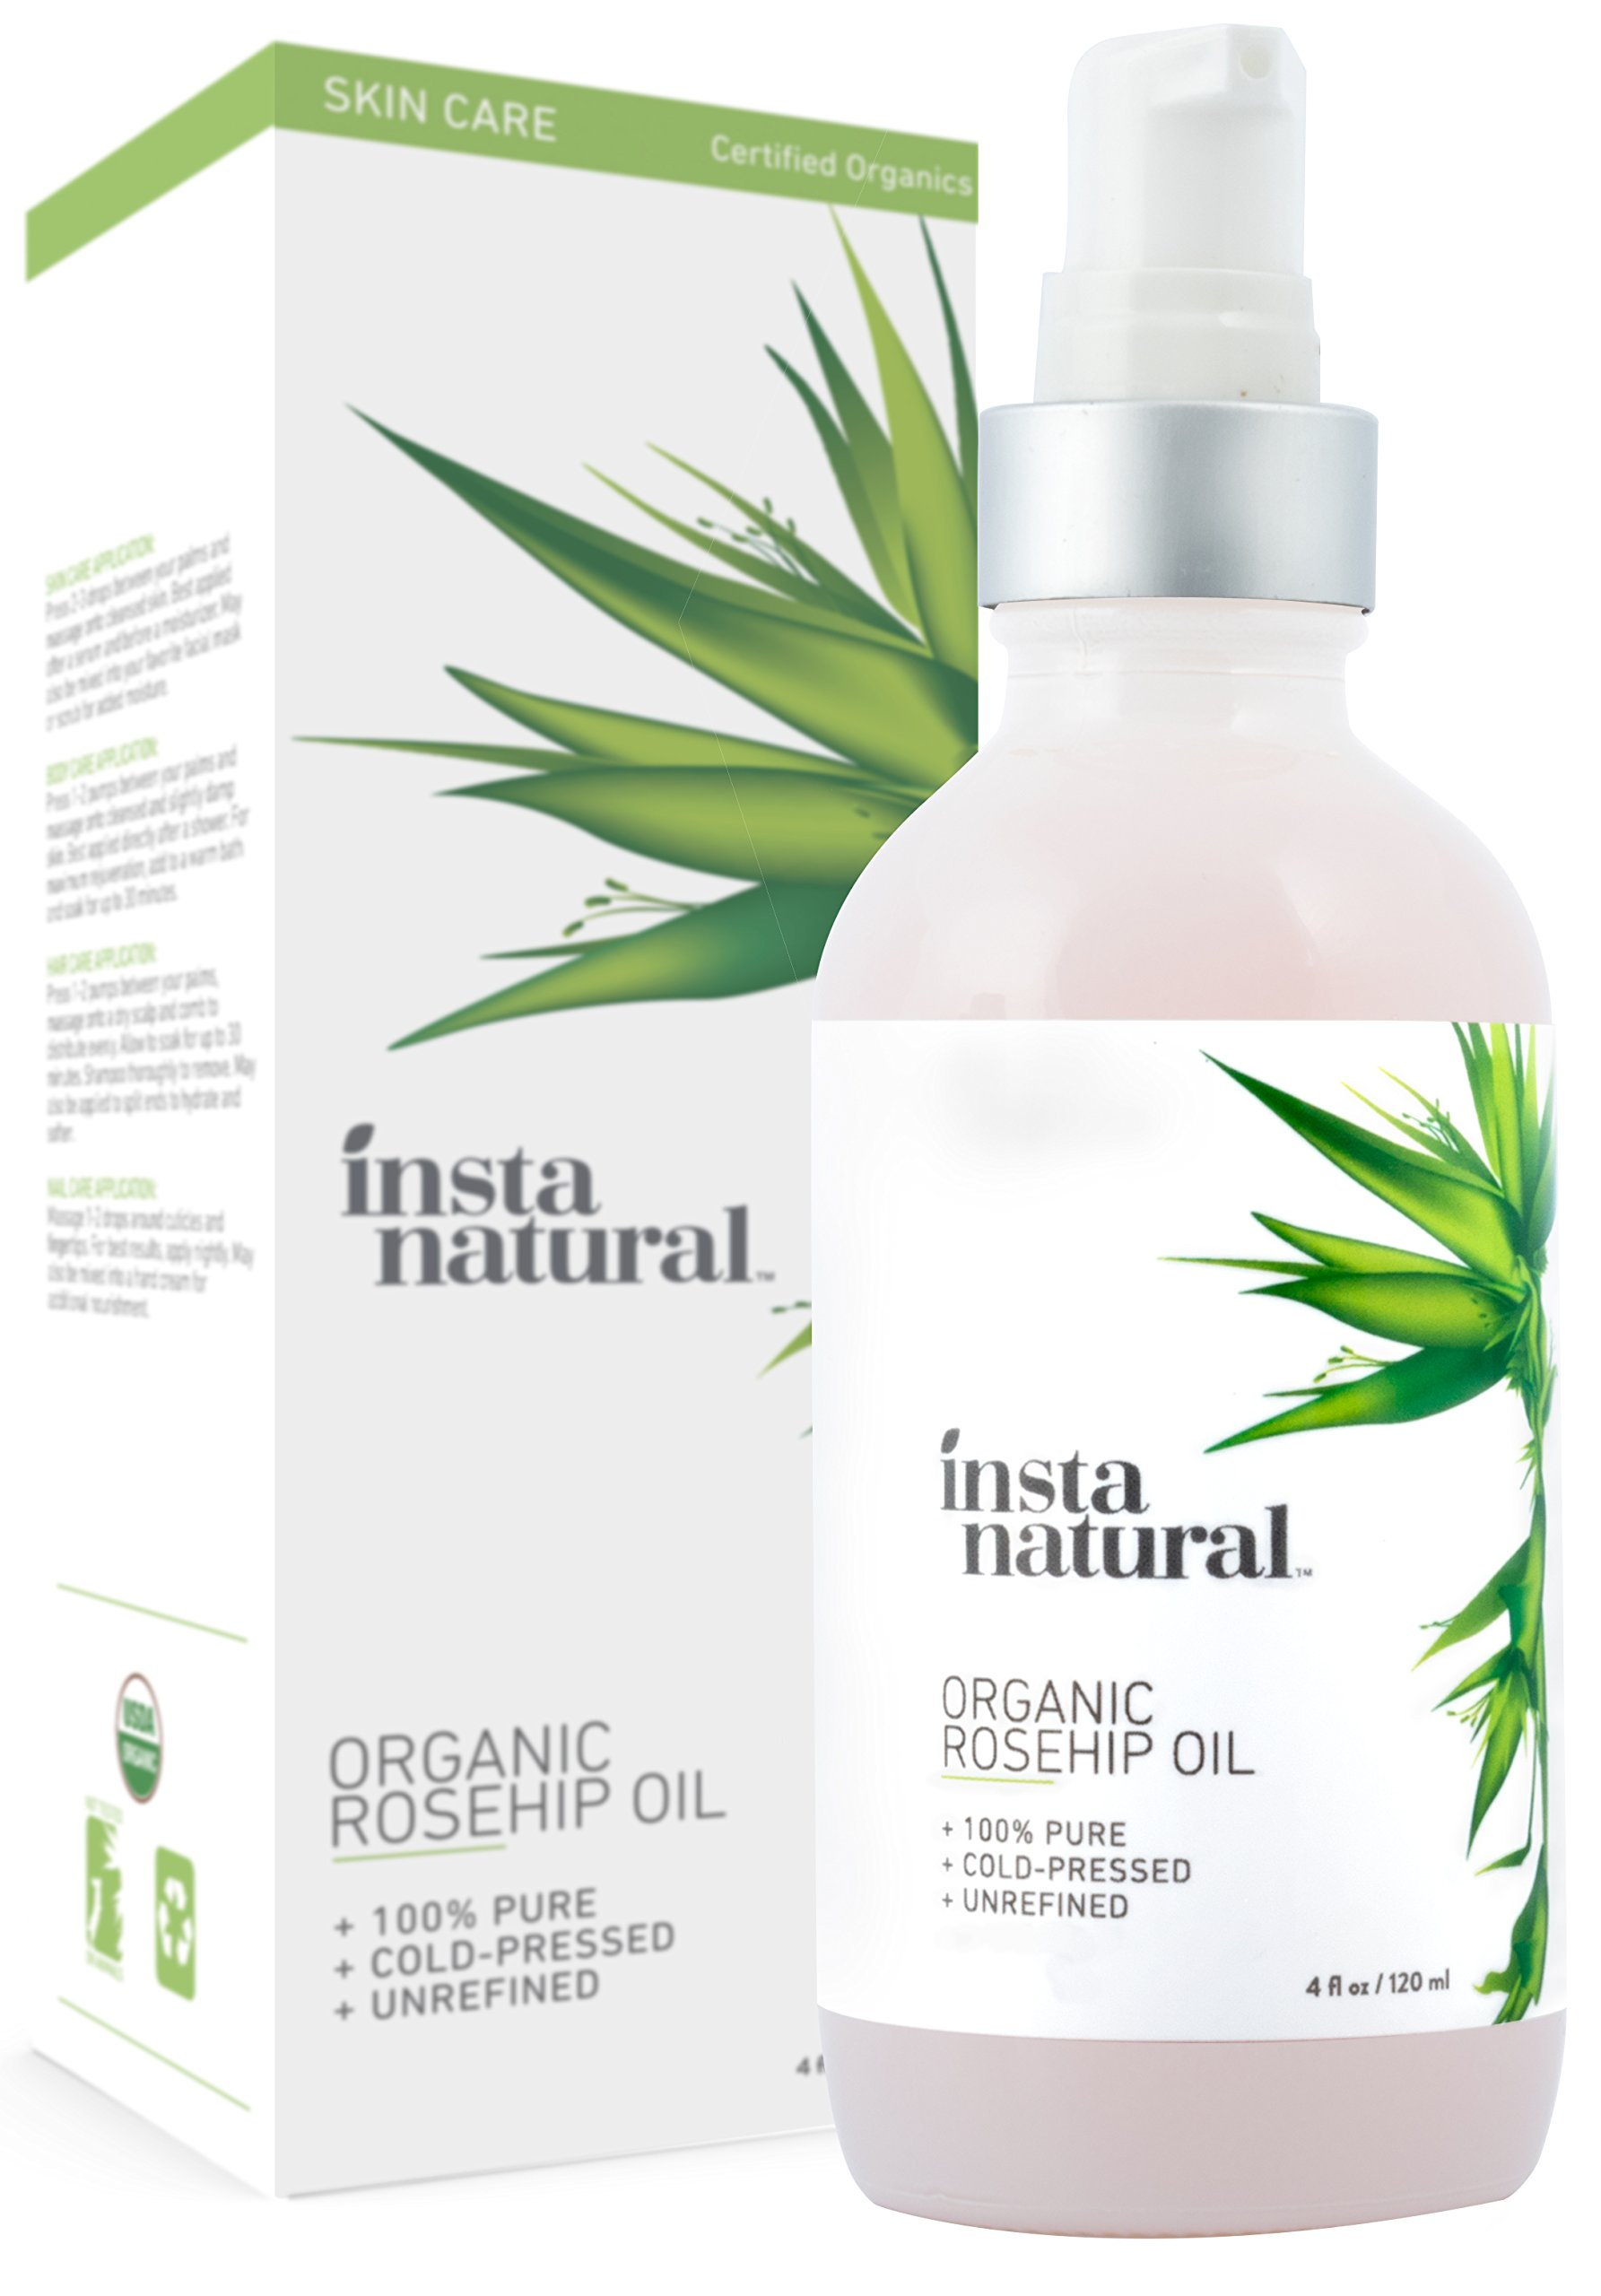 Organic Rosehip Seed Oil - 100% Pure, Unrefined Virgin Oil - Natural Moisturizer for Face, Skin, Hair, Stretch Marks, Scars, Wrinkles, Fine Lines & Nails - Omega 6, Vitamin A and C - 4 oz by InstaNatural